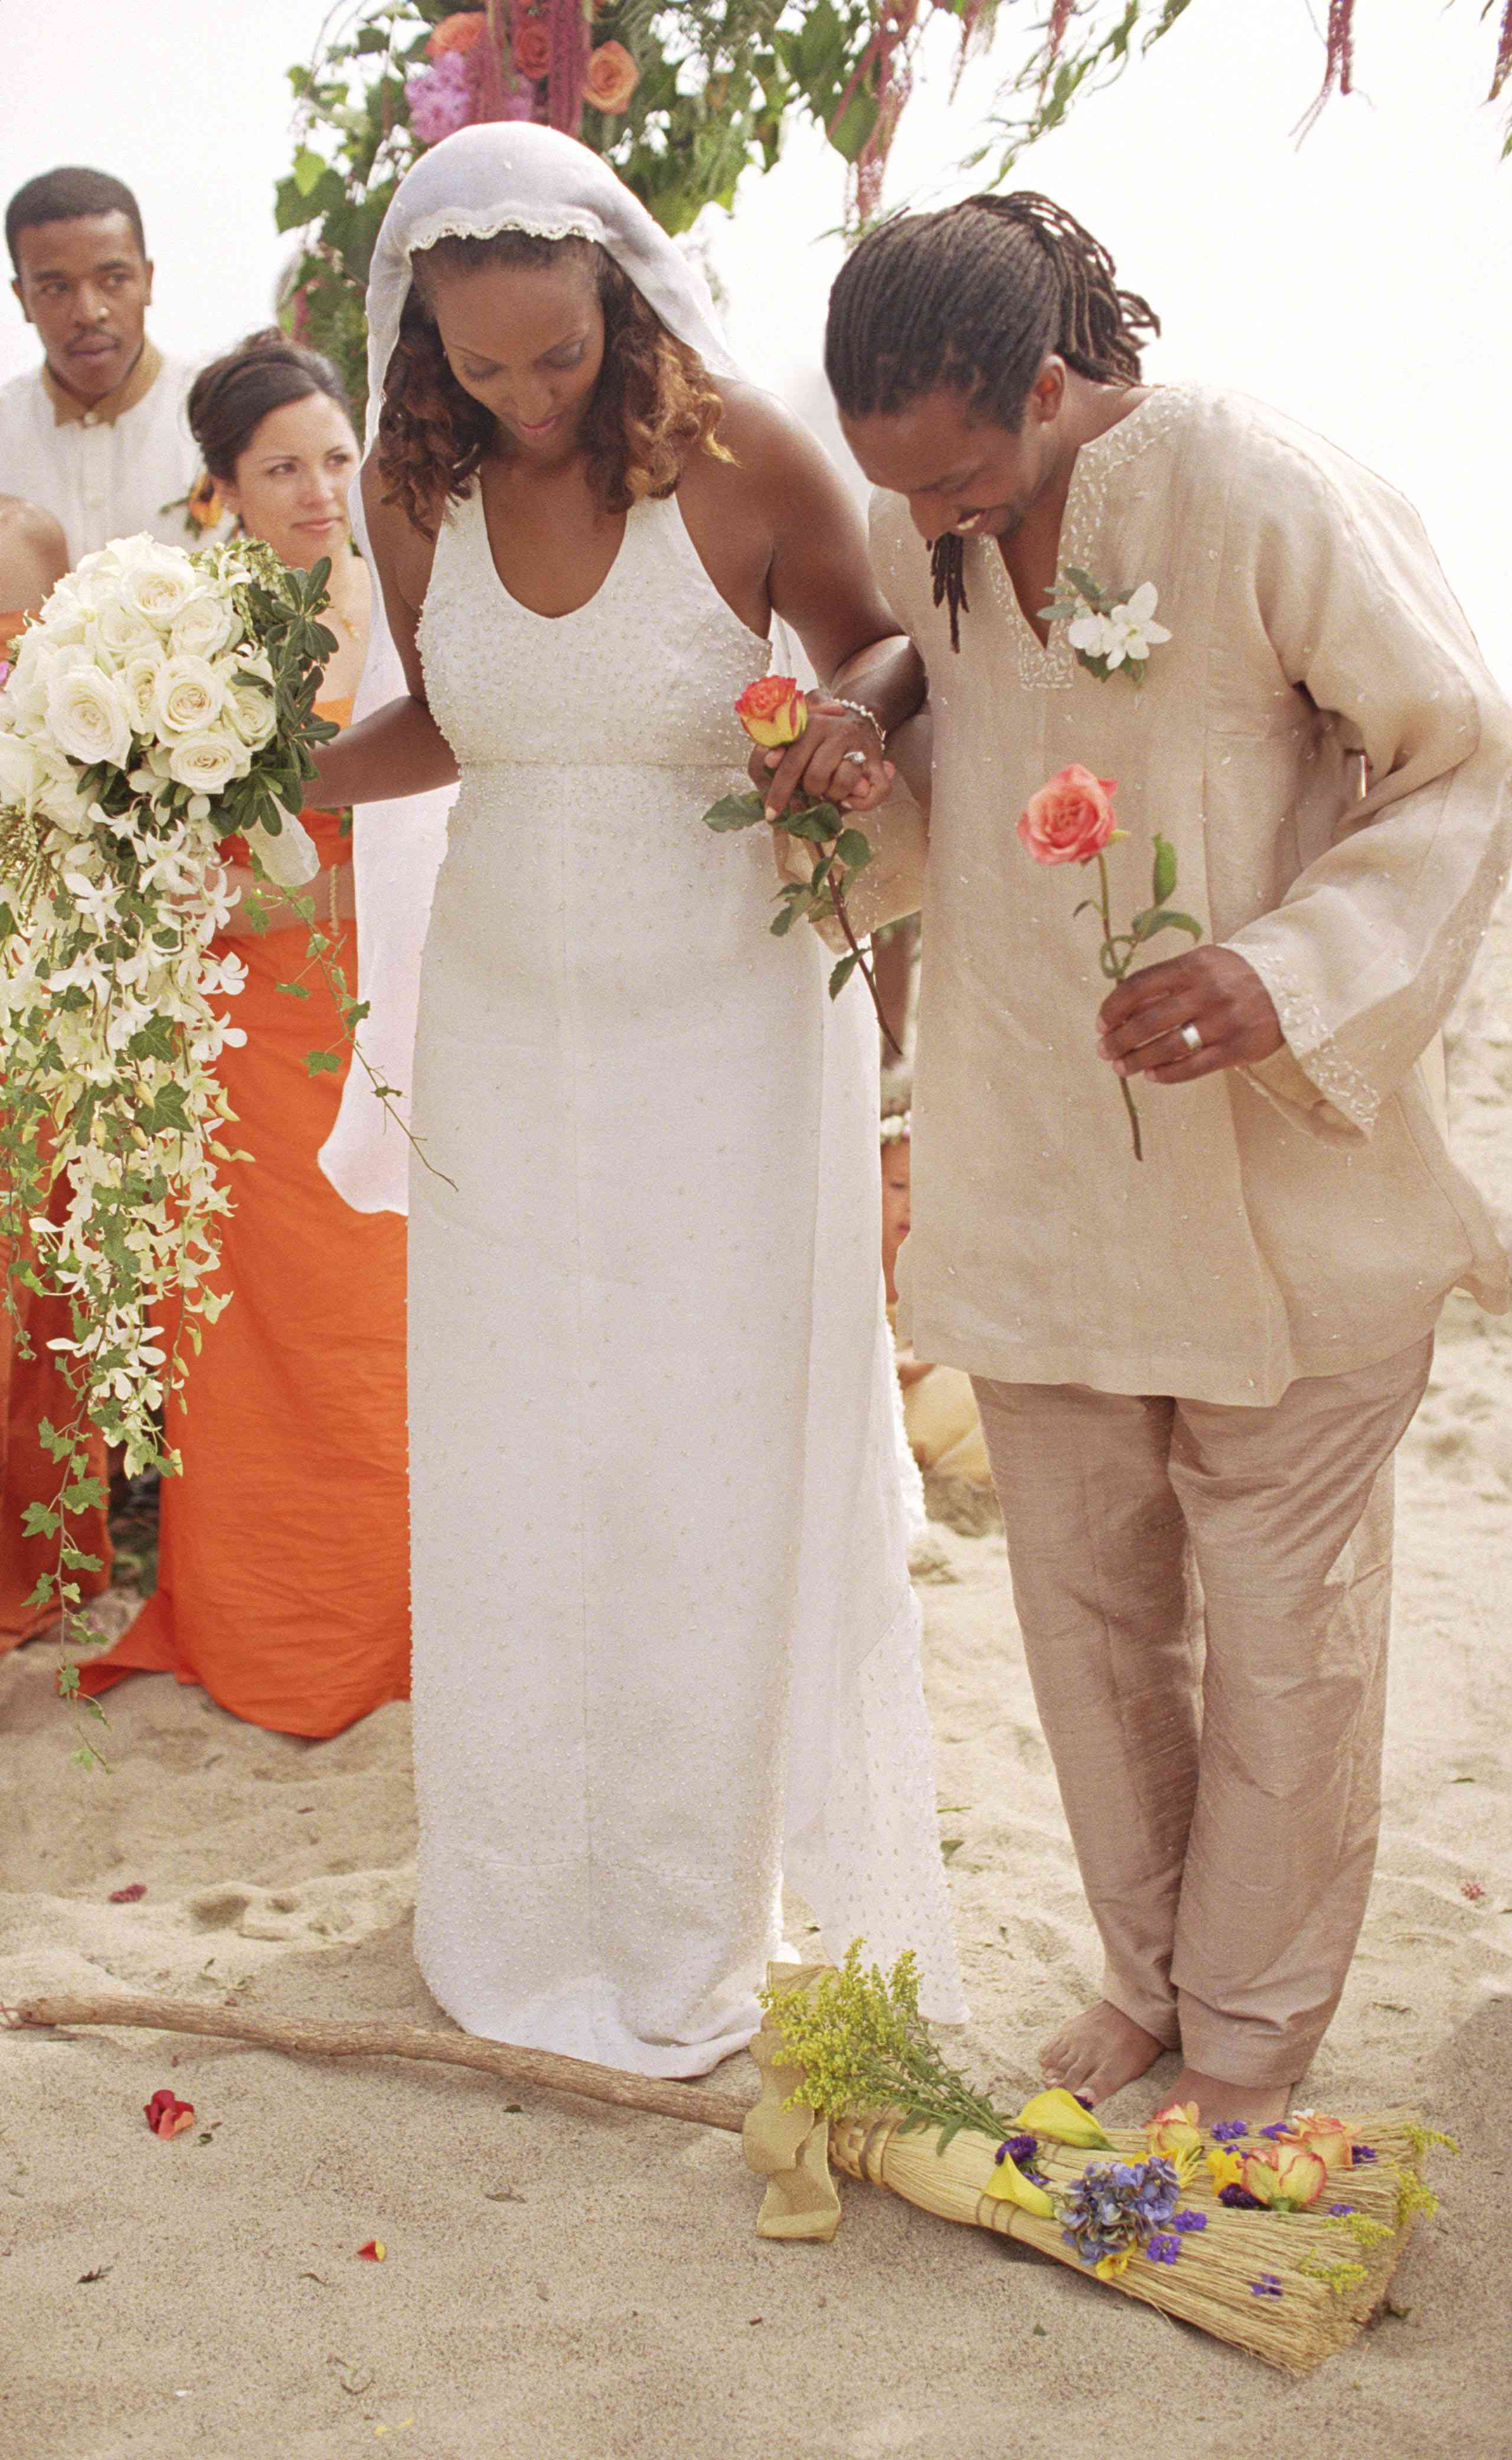 Jumping the broom at a wedding ceremony